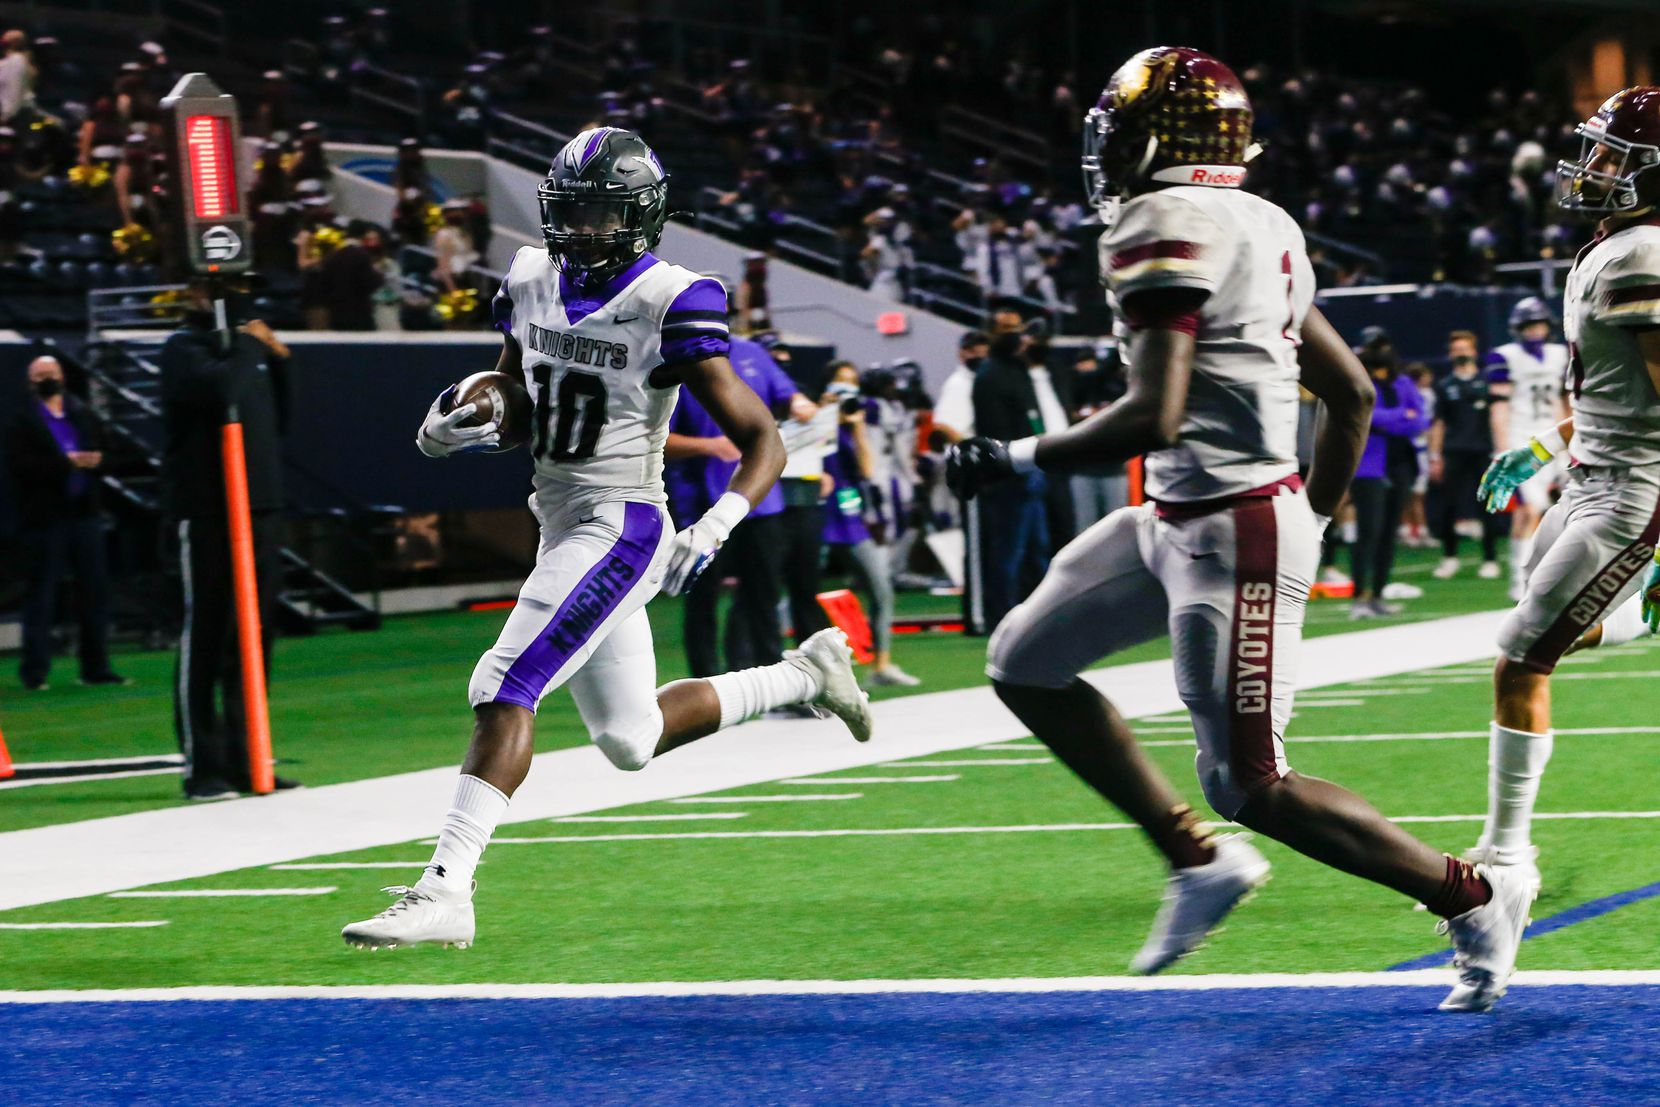 Frisco Independence running back Jaedon Orr (10) runs the ball in for a touchdown during the first half against Frisco Heritage at the Ford Center at the Star in Frisco on Thursday, Dec. 3, 2020. (Juan Figueroa/ The Dallas Morning News)